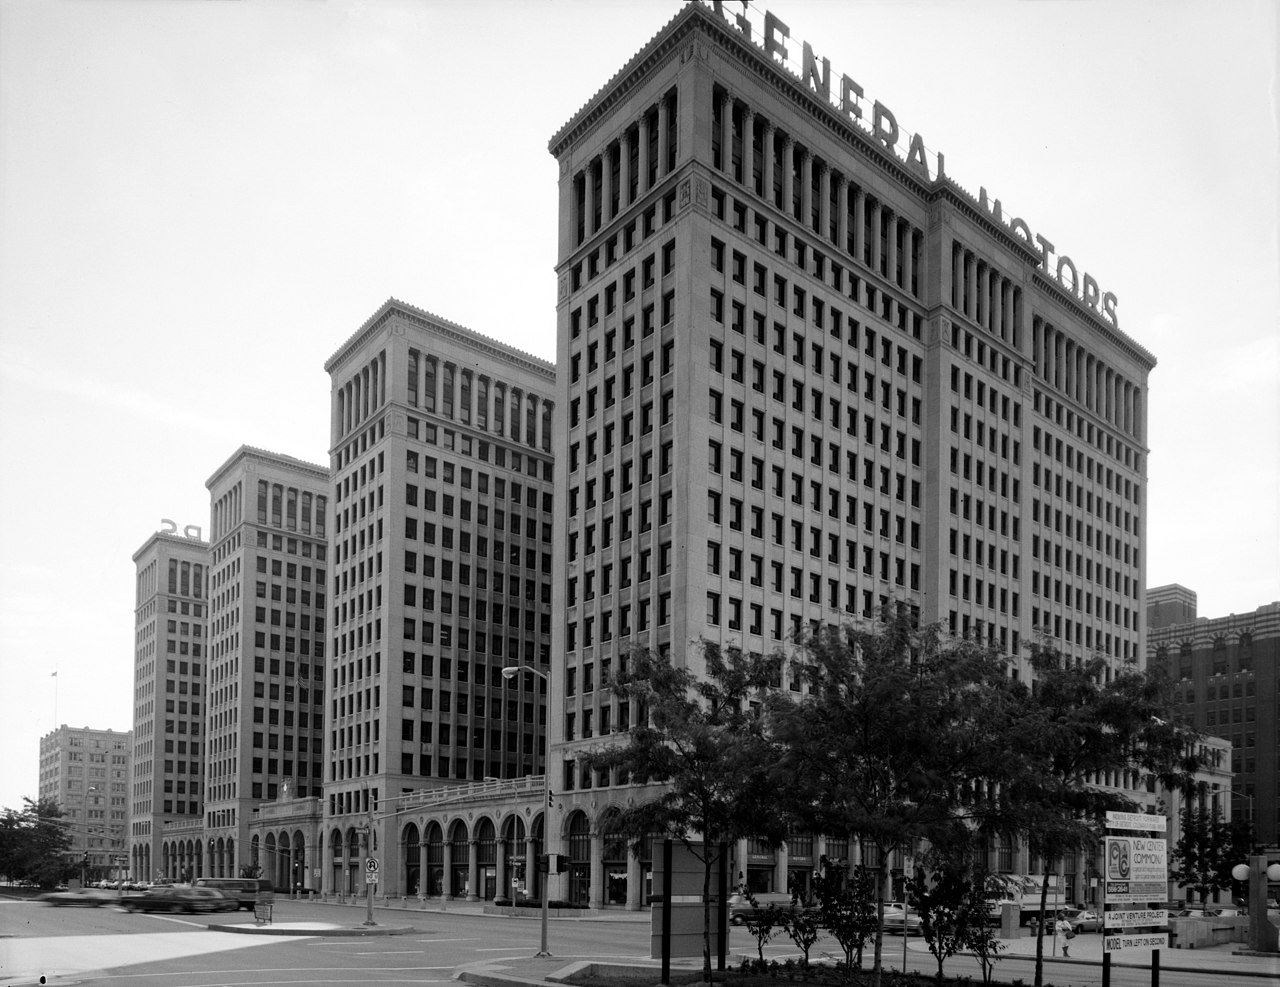 [Image: 1280px-General_Motors_building_089833pv.jpg]